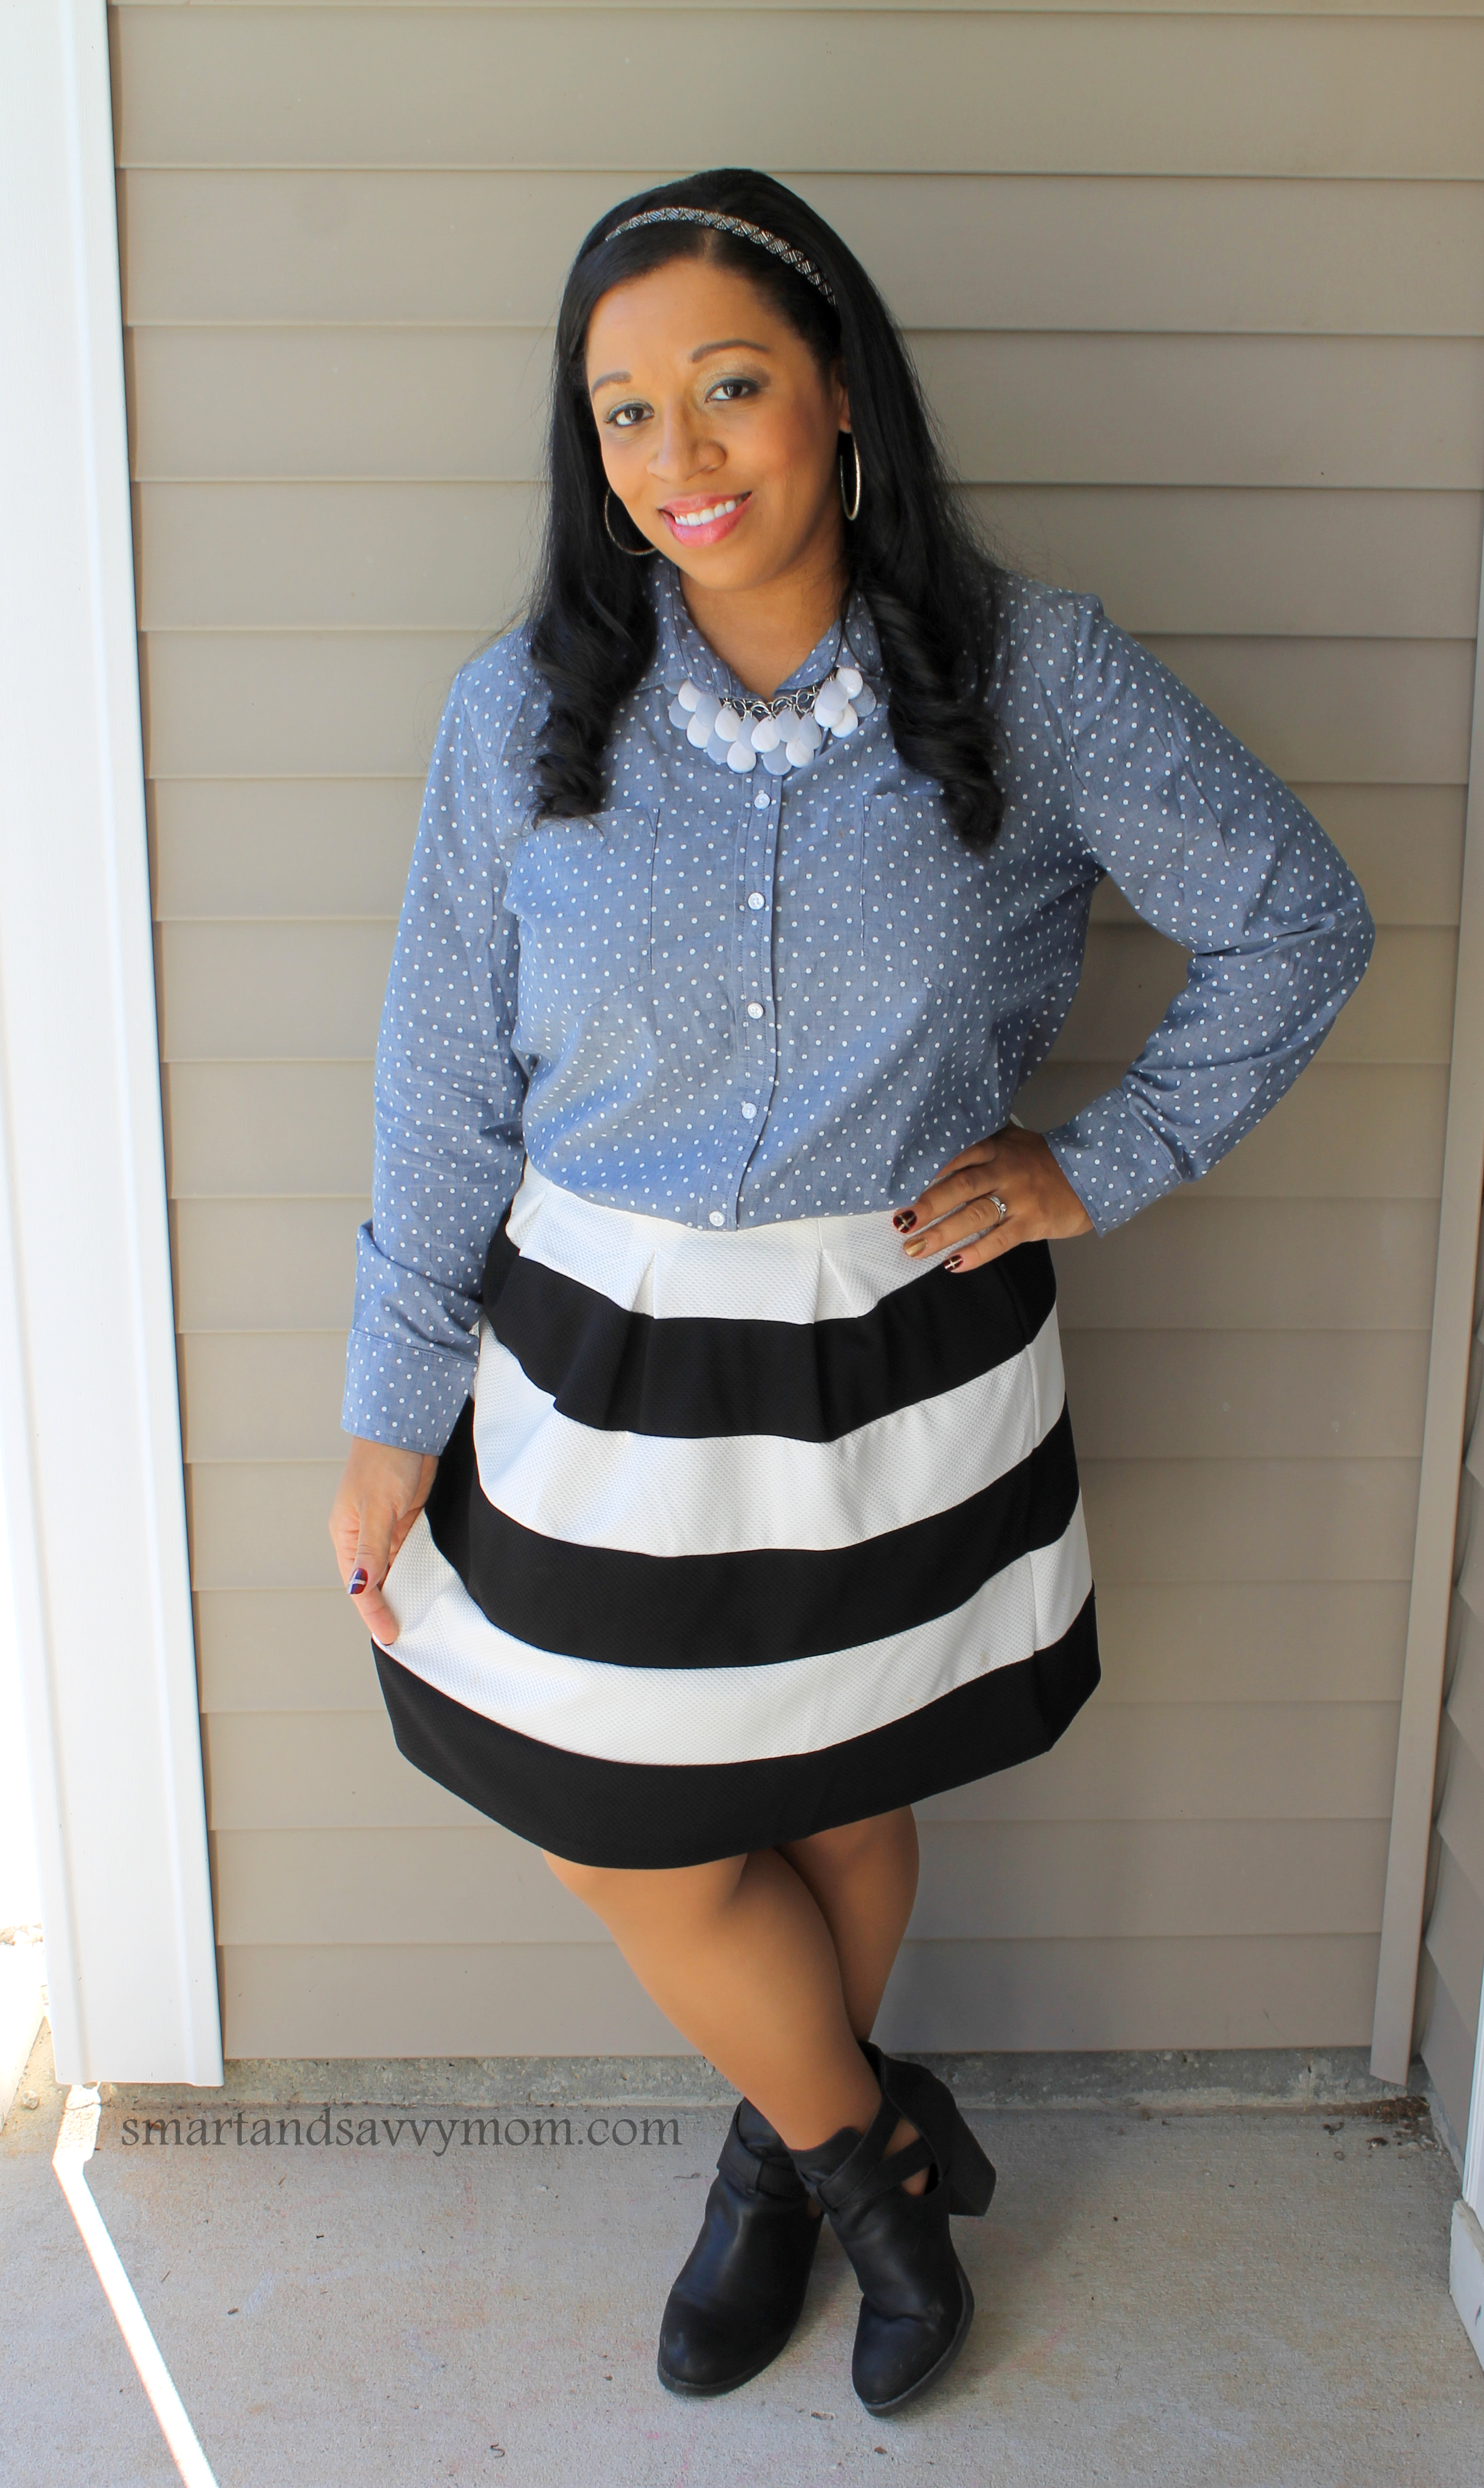 polka dot chambray shirt with black and white striped skirt, easy modest outfit idea